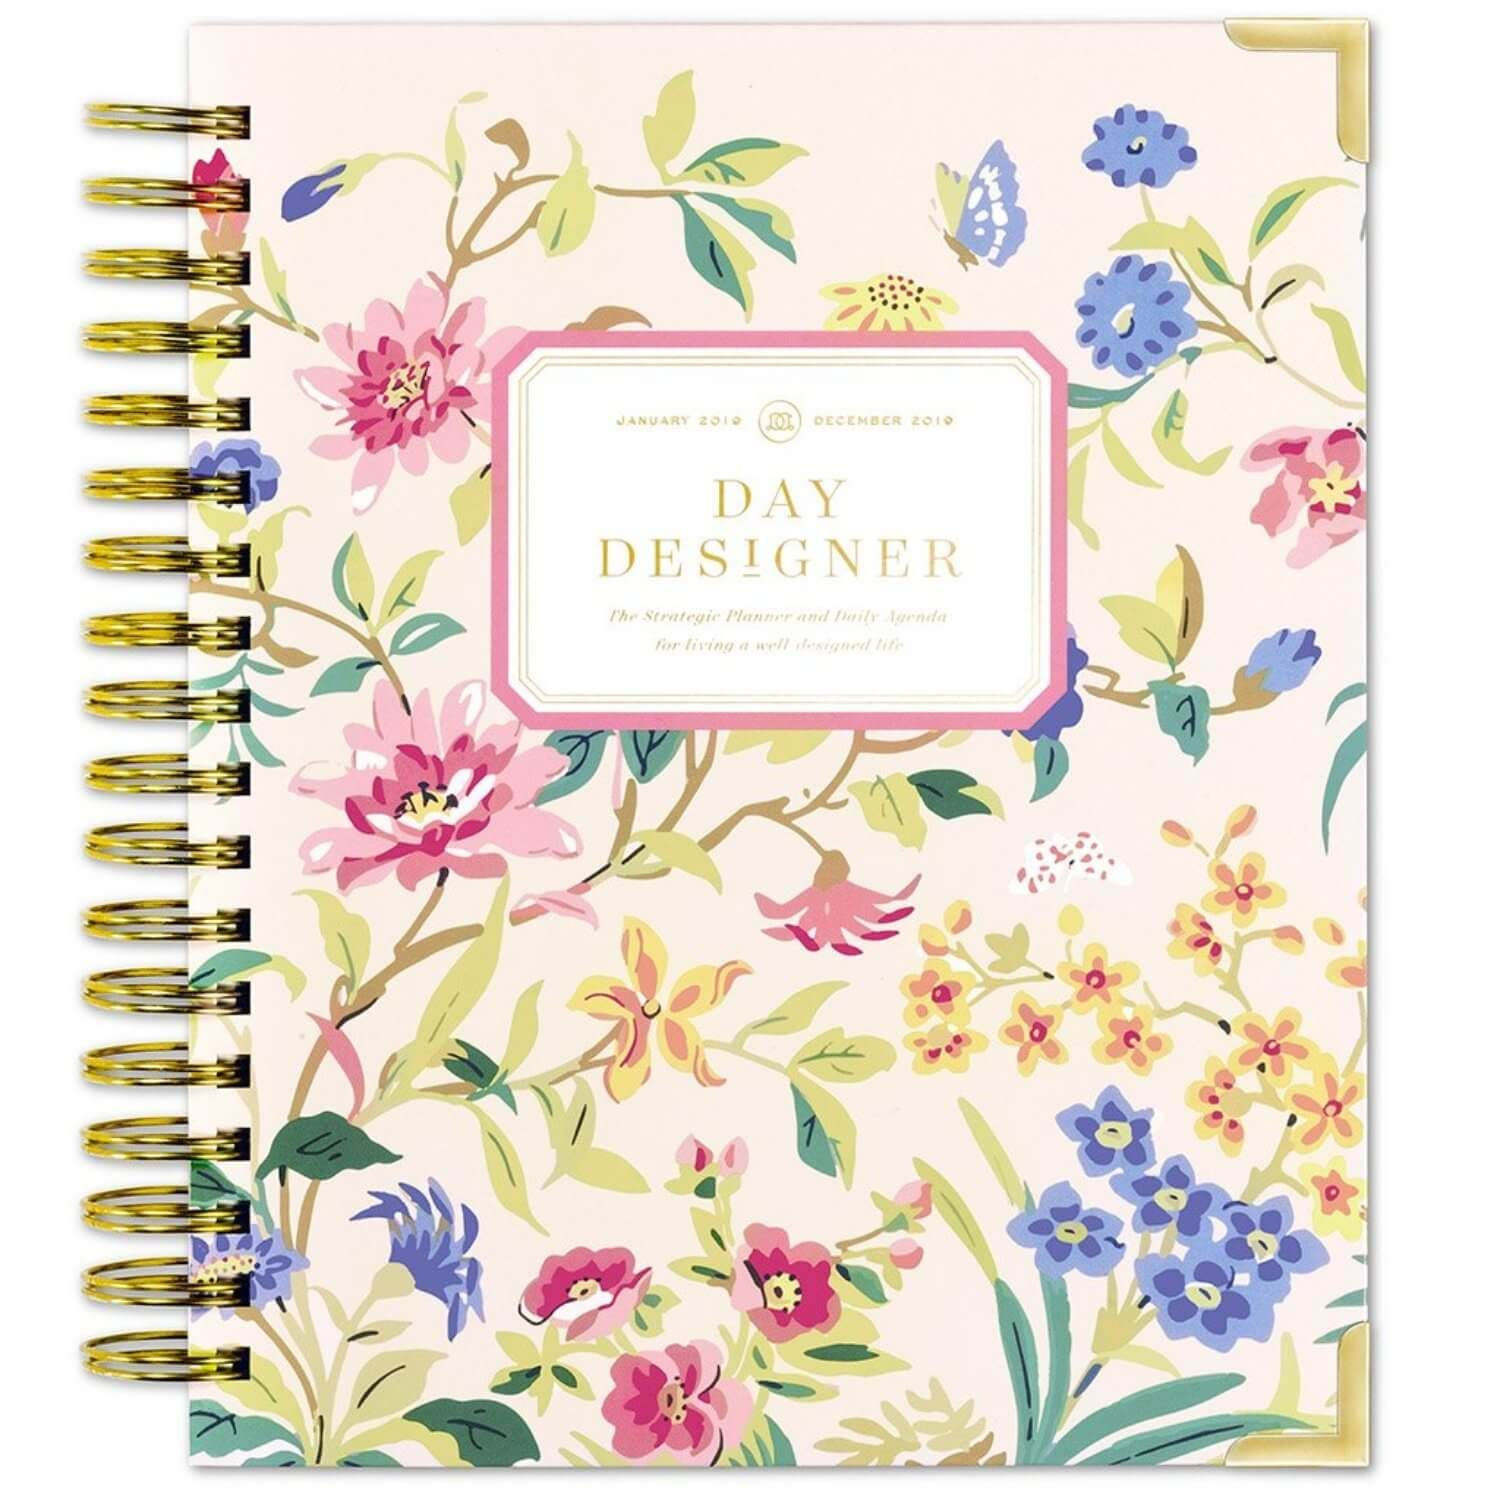 Day Designer Climbing Floral Daily Planner Dated January